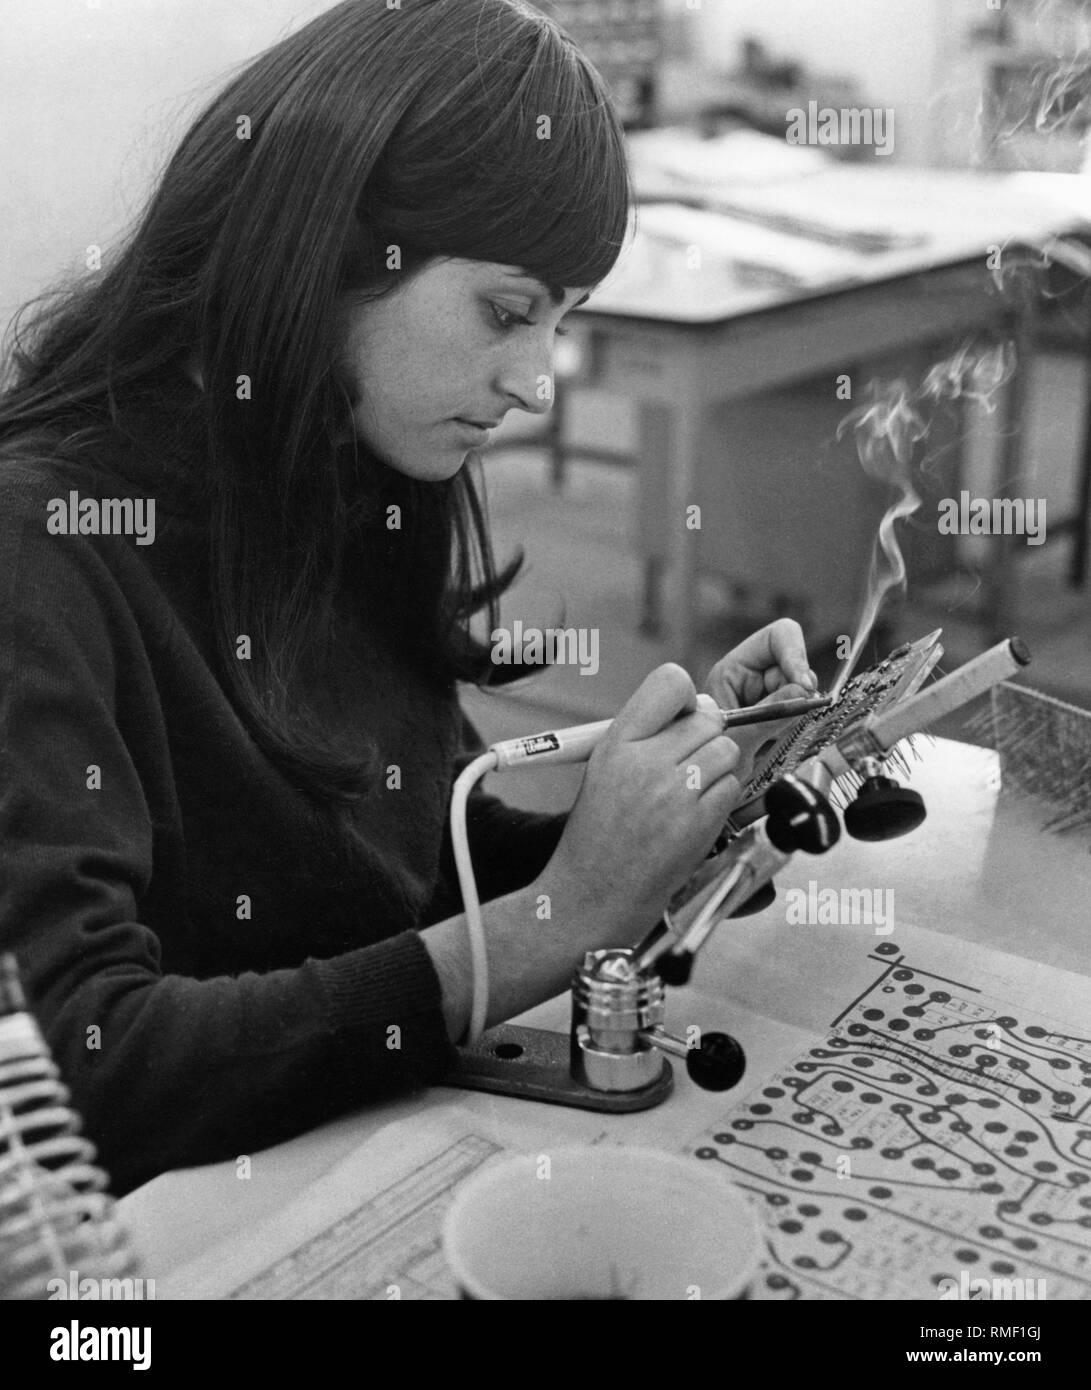 Golan Industries, electronic department: a woman brazes components on a printed circuit board. Golan specialized in the production of catapult seats for military aircrafts. - Stock Image